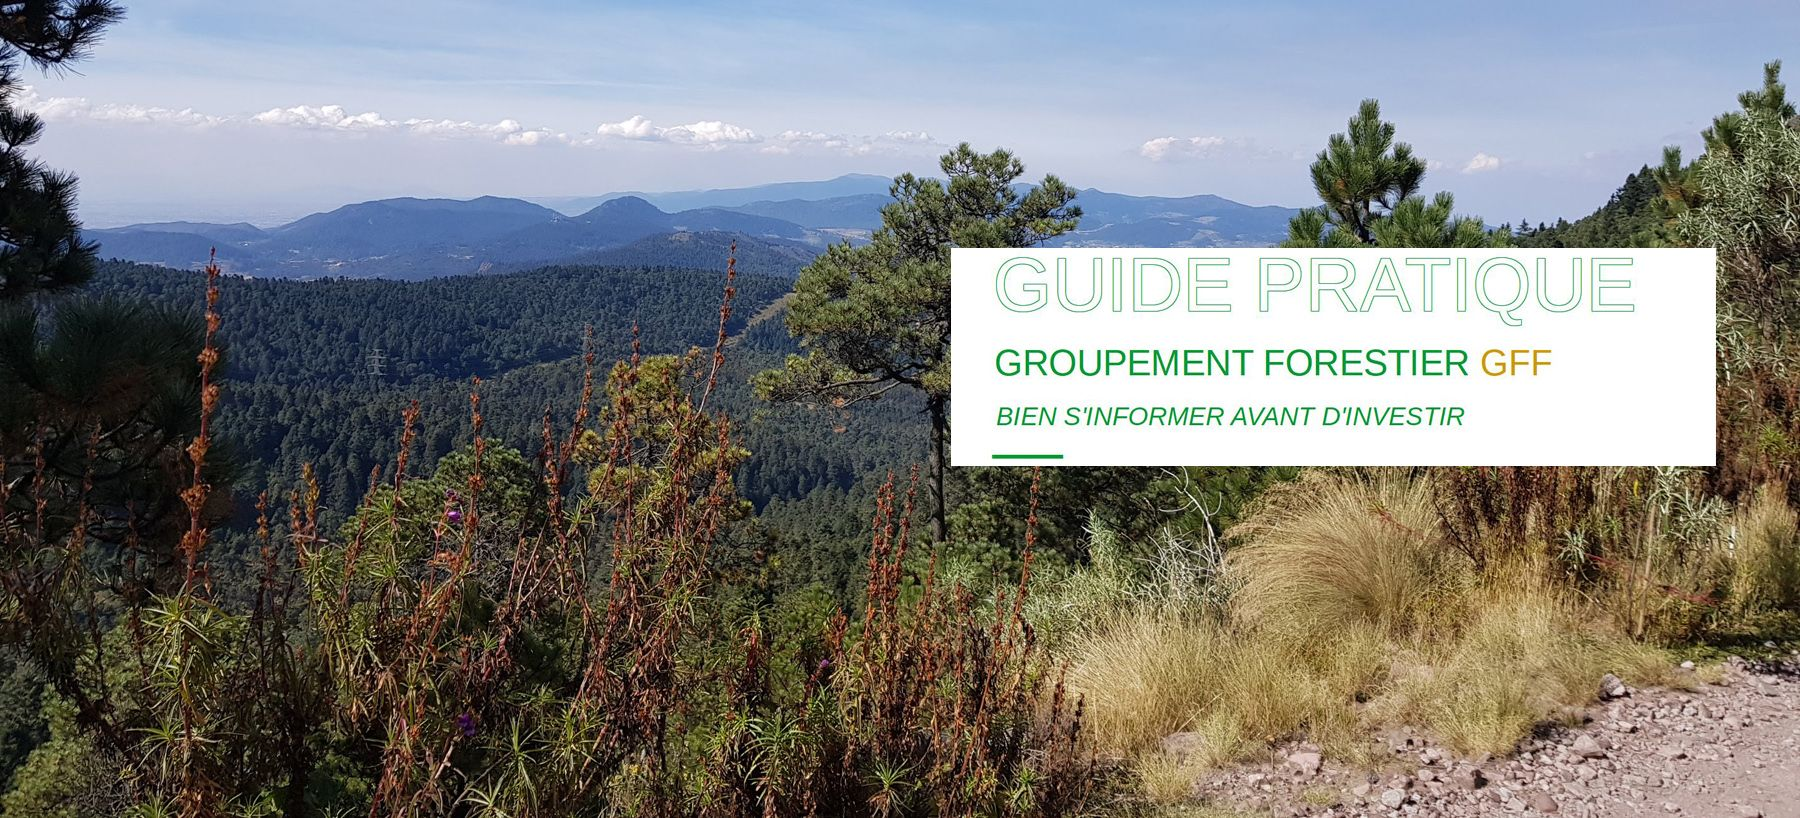 Guide-pdf-des-groupements-forestiers GFF 1